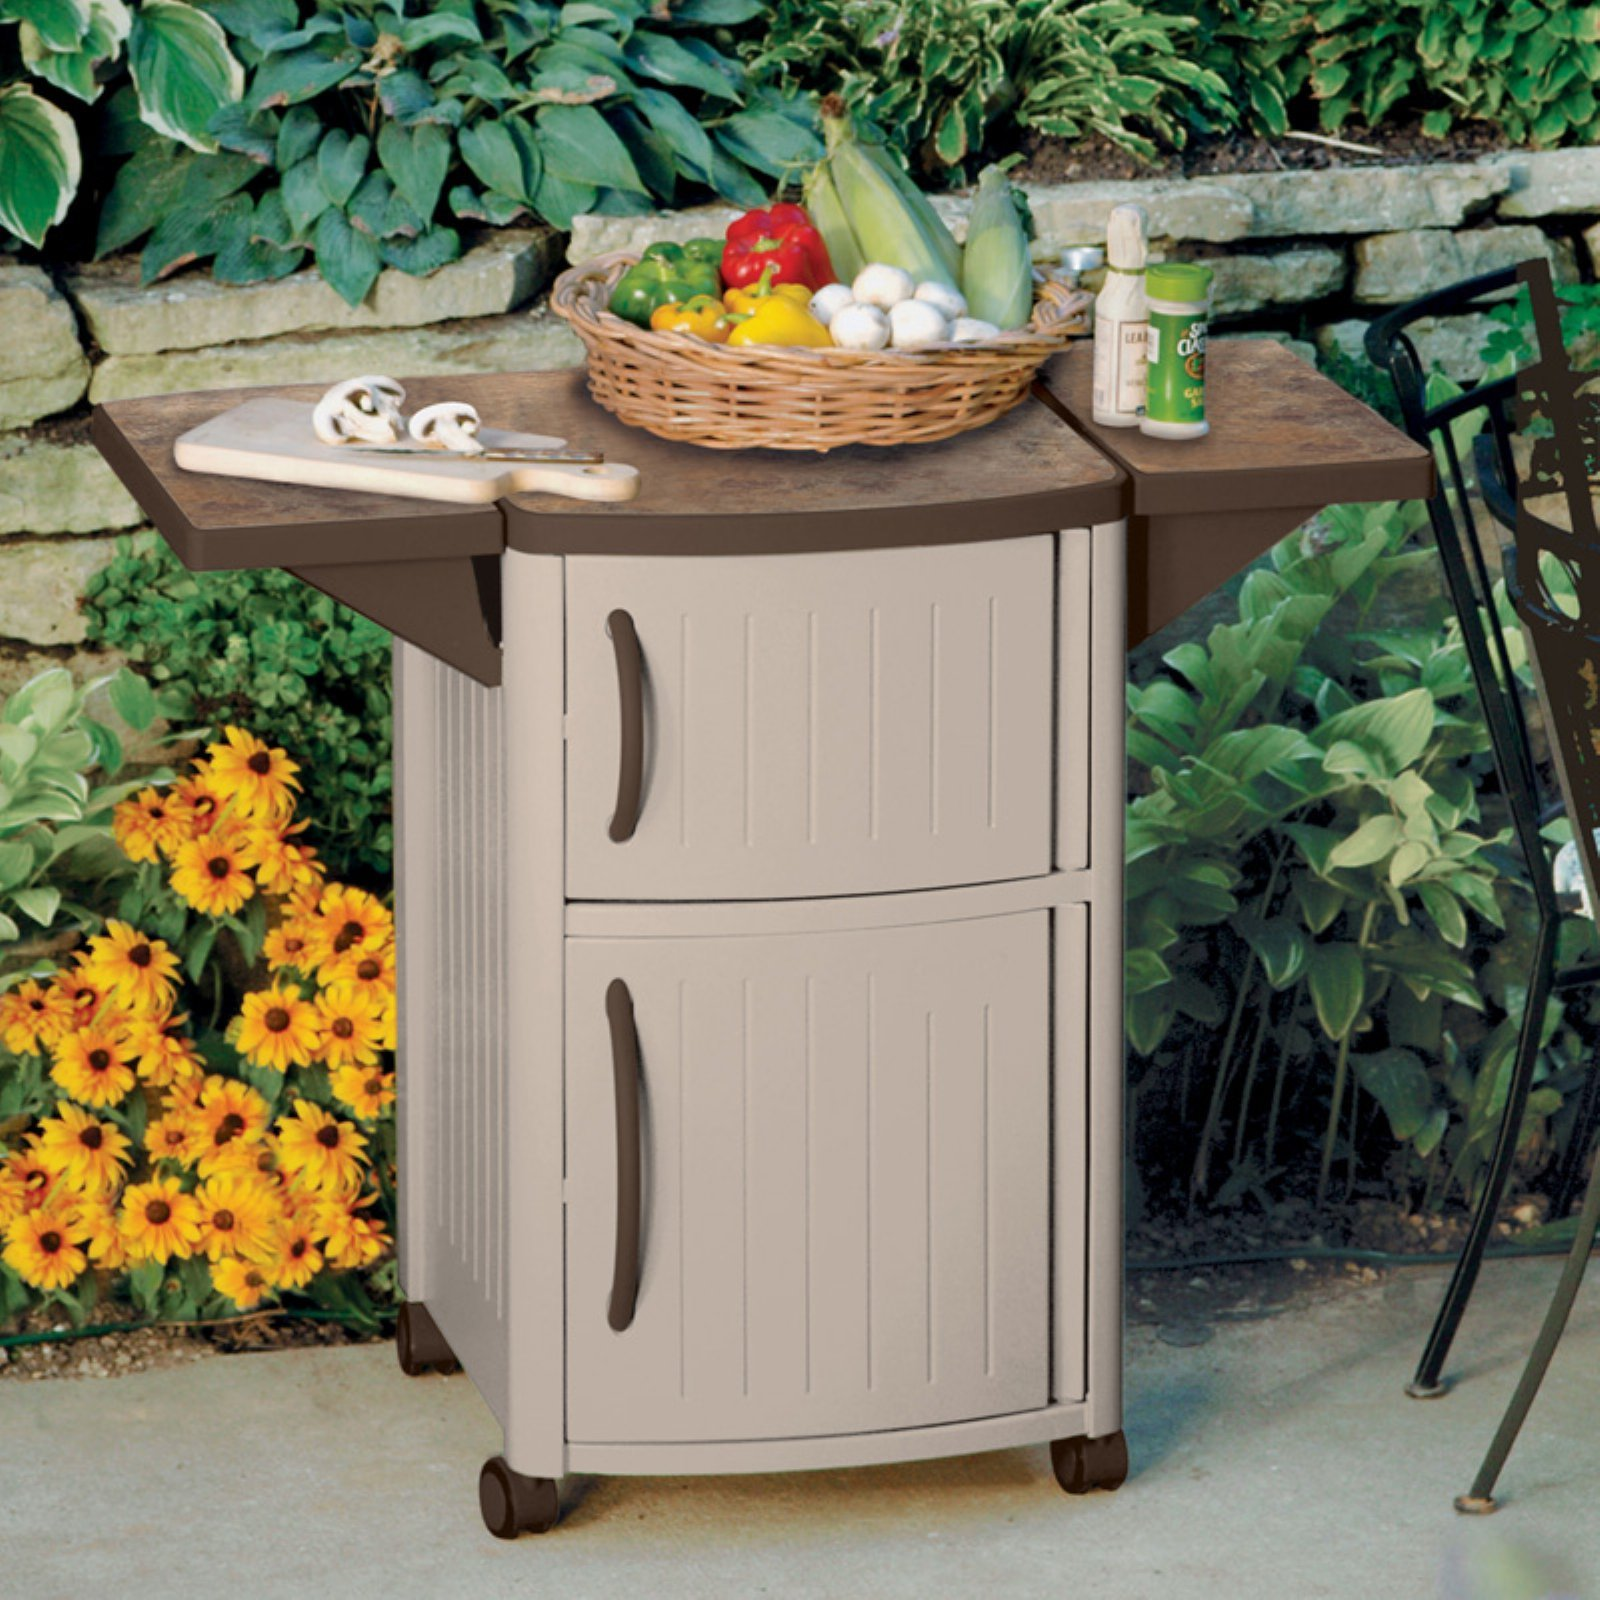 Outdoor Prep Table Station BBQ Patio Storage Cabinet Cooking Food Serving Island Cart Portable Deck Backyard